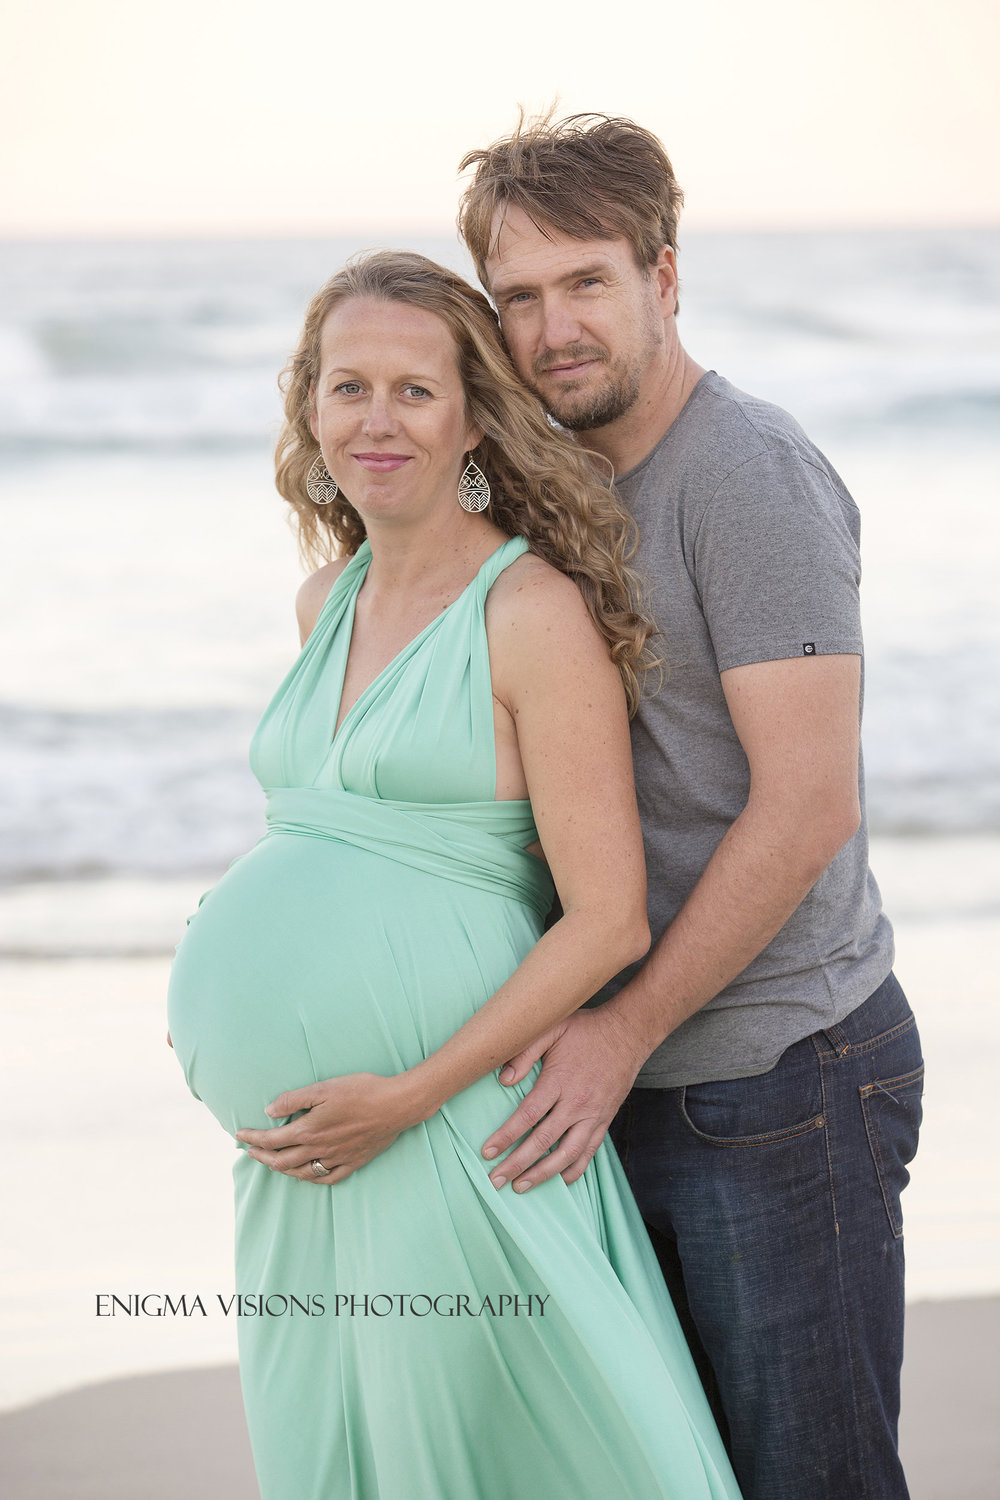 enigma_visions_photography_maternity_melandandrew_kingscliff (45).jpg